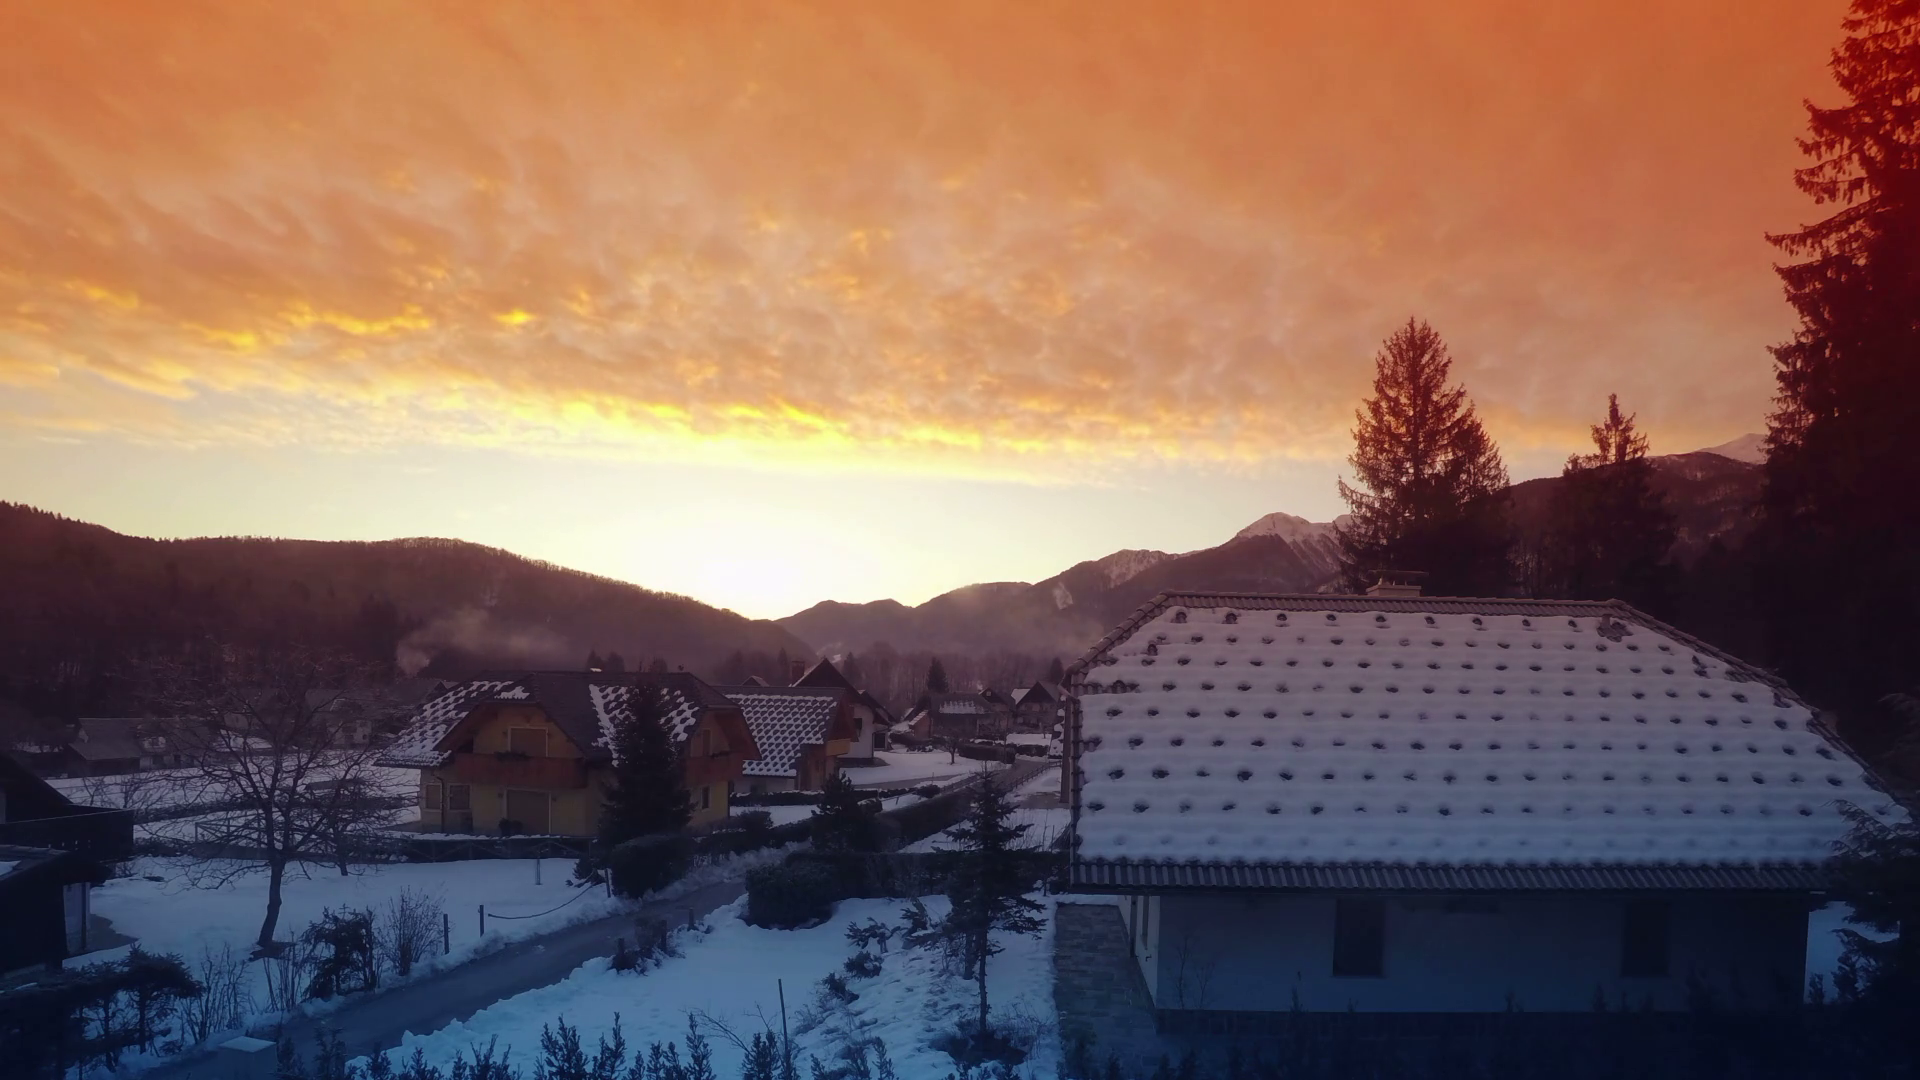 Winter morning sunrise in mountain village, time lapse footage of ...